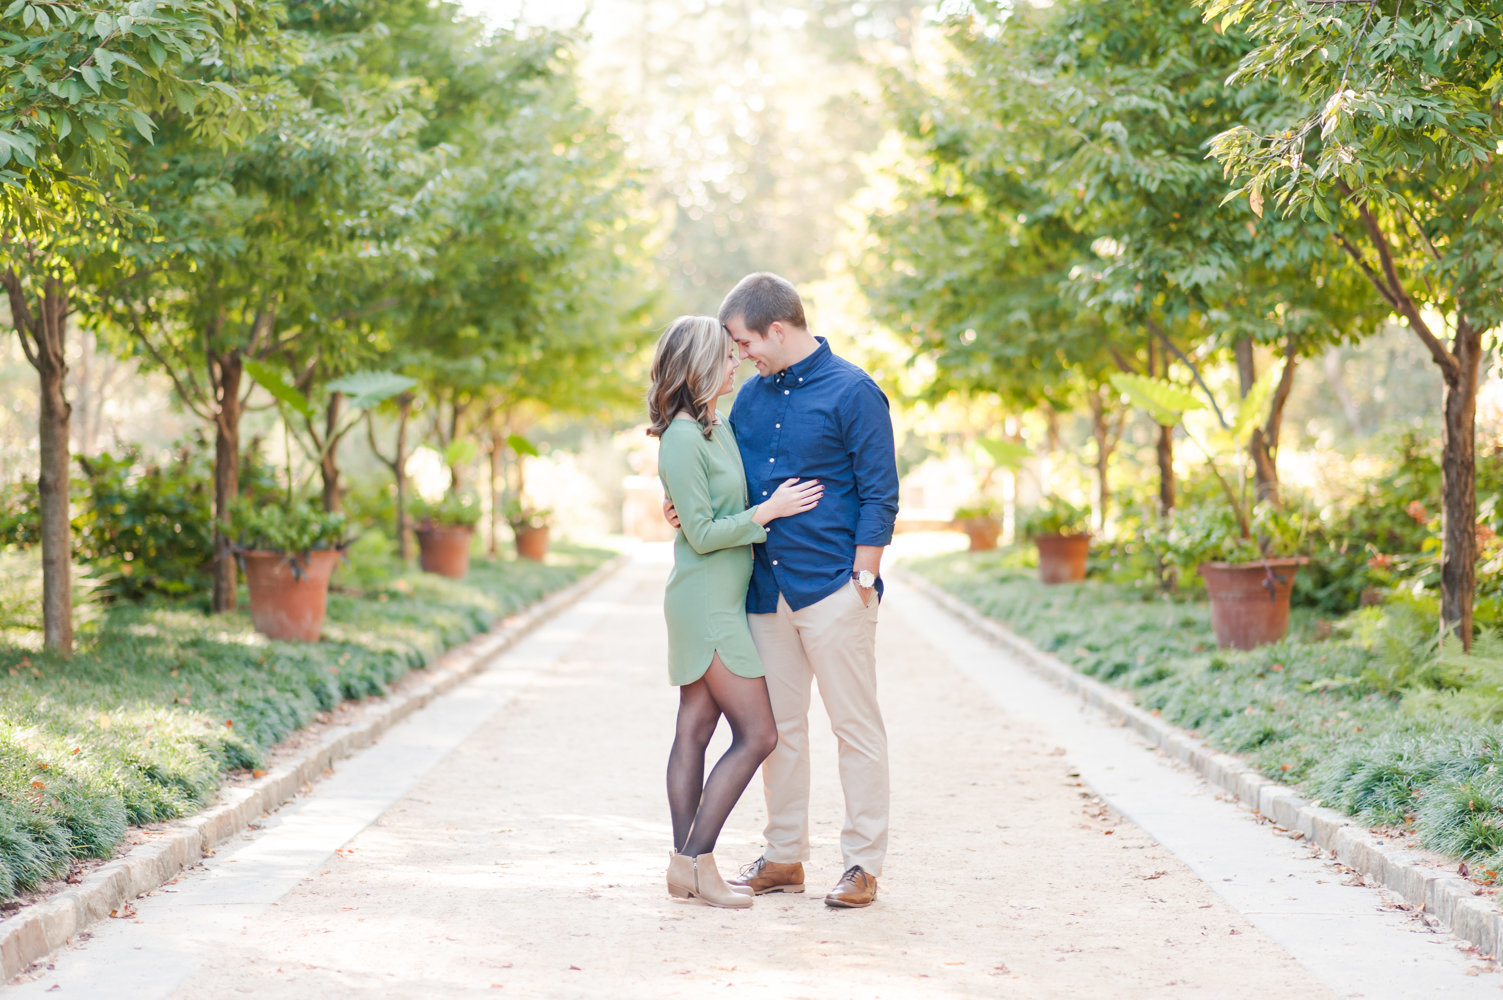 engagement-portraits-christina-forbes-photography-8